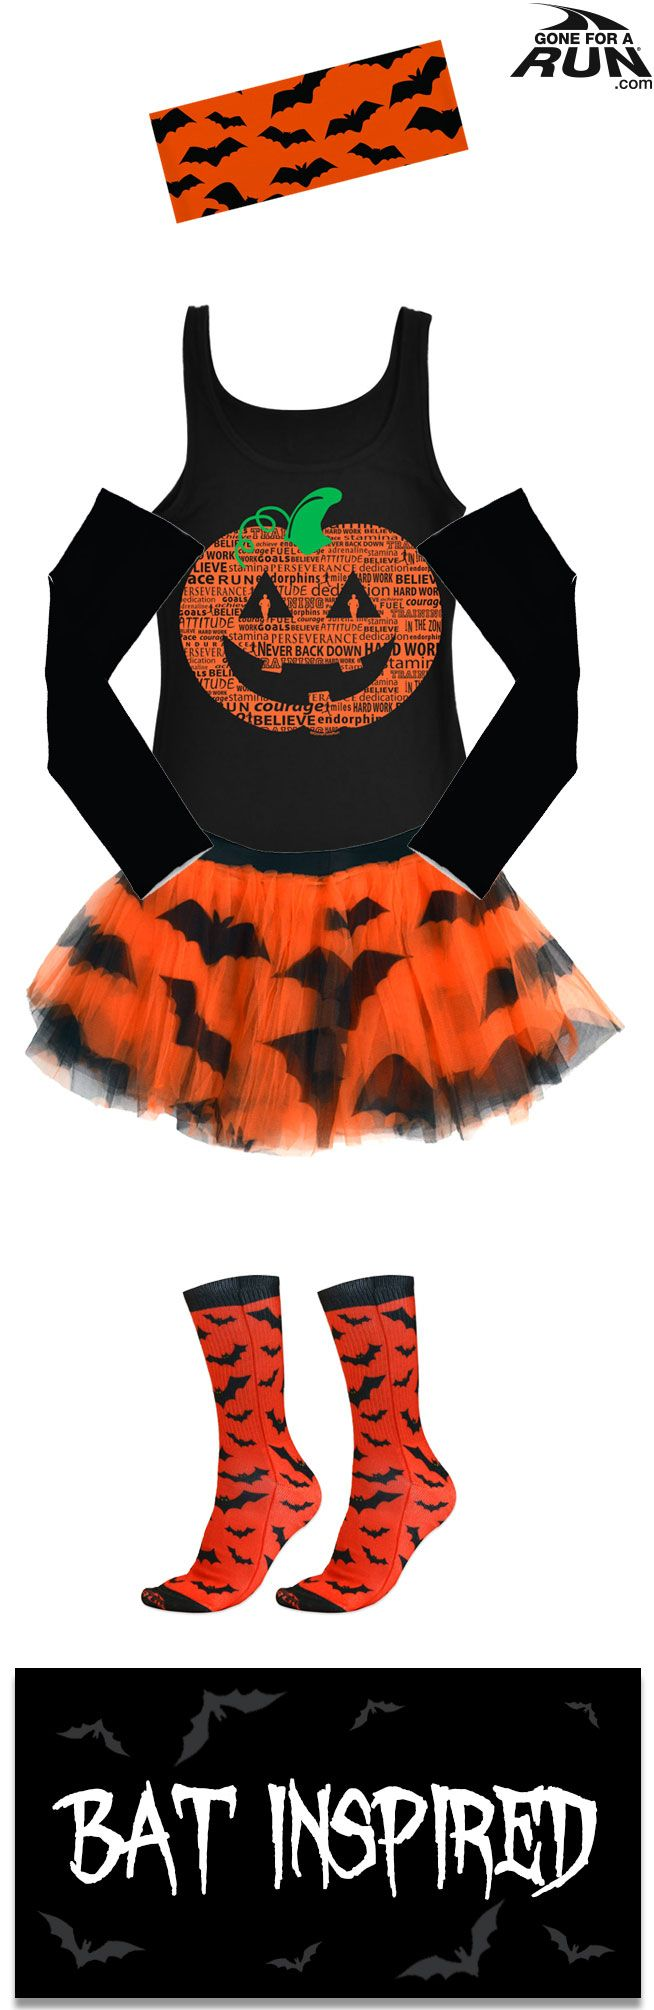 Trick or run? Get in a #spooky fun mood with our #Halloween inspired running gifts! From shirts to socks and more, you'll find something to suit you and your running friends haunted moods! Make up your own #costume, or check out one of our original ideas! Fly through your race faster than a colony of bats with this bat inspired Halloween runner's costume!